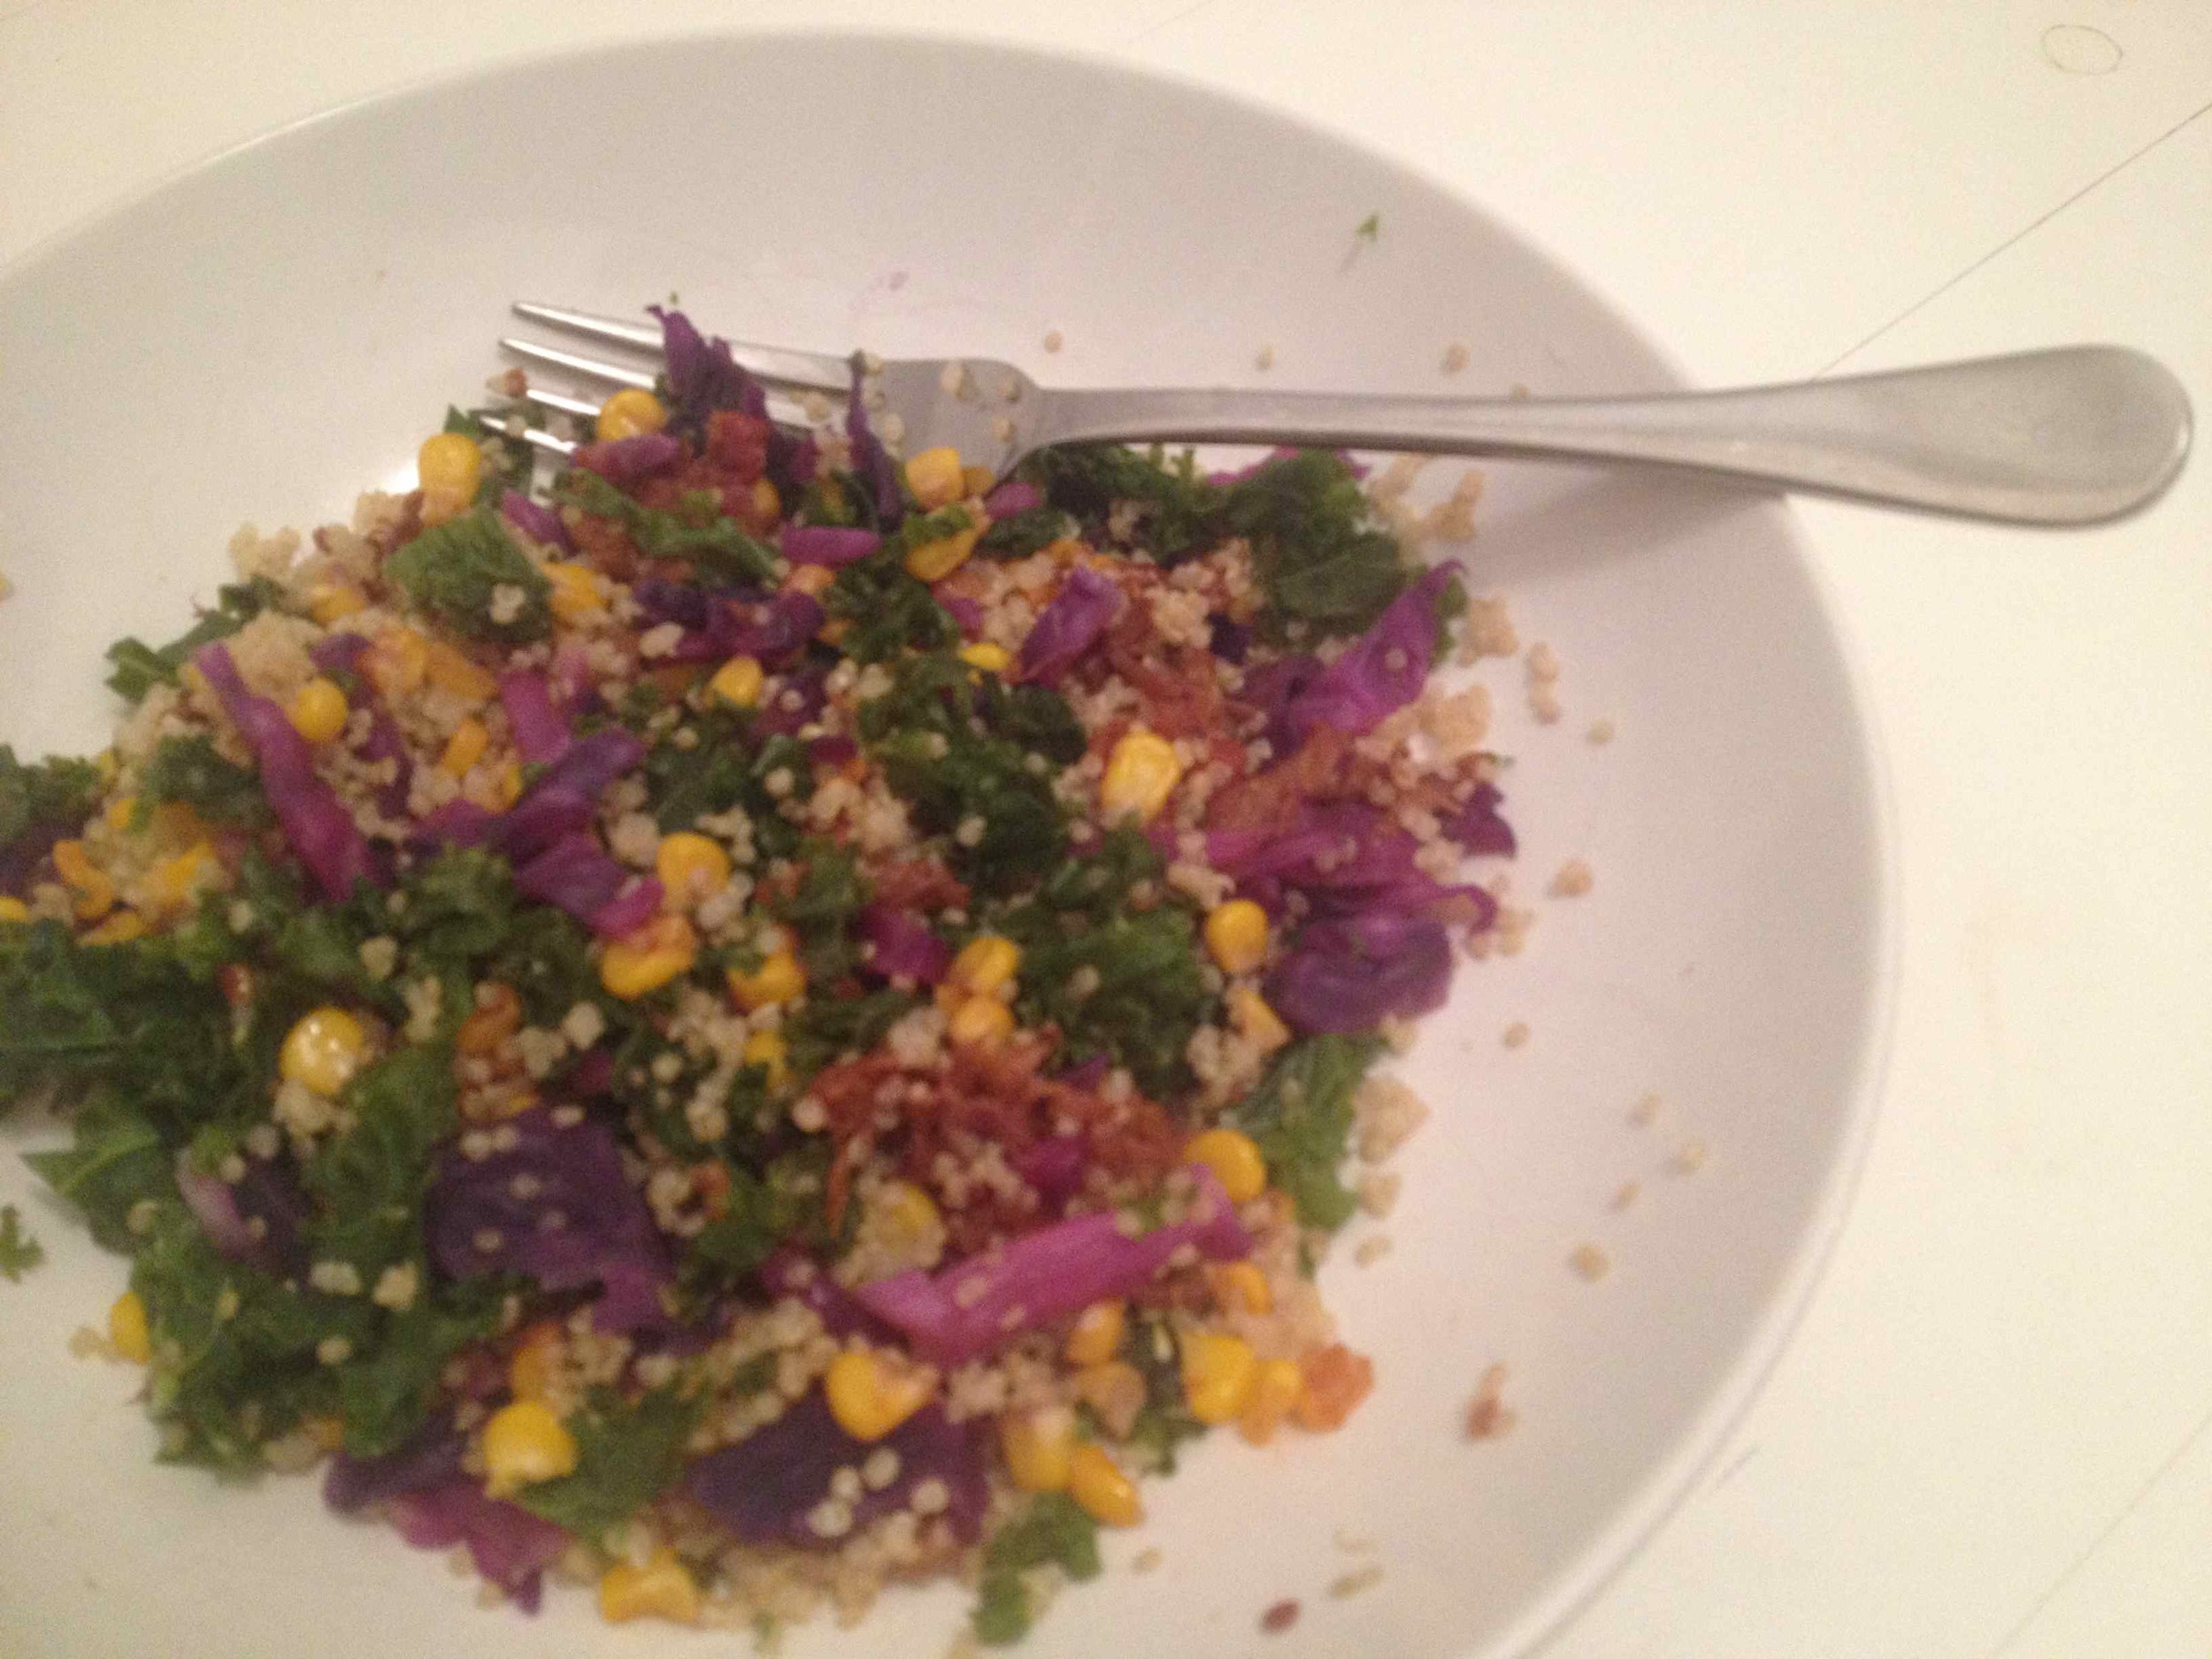 Friday | Pulled pork .... again! Reinvigorated and made colourful with kale, red cabbage and corn